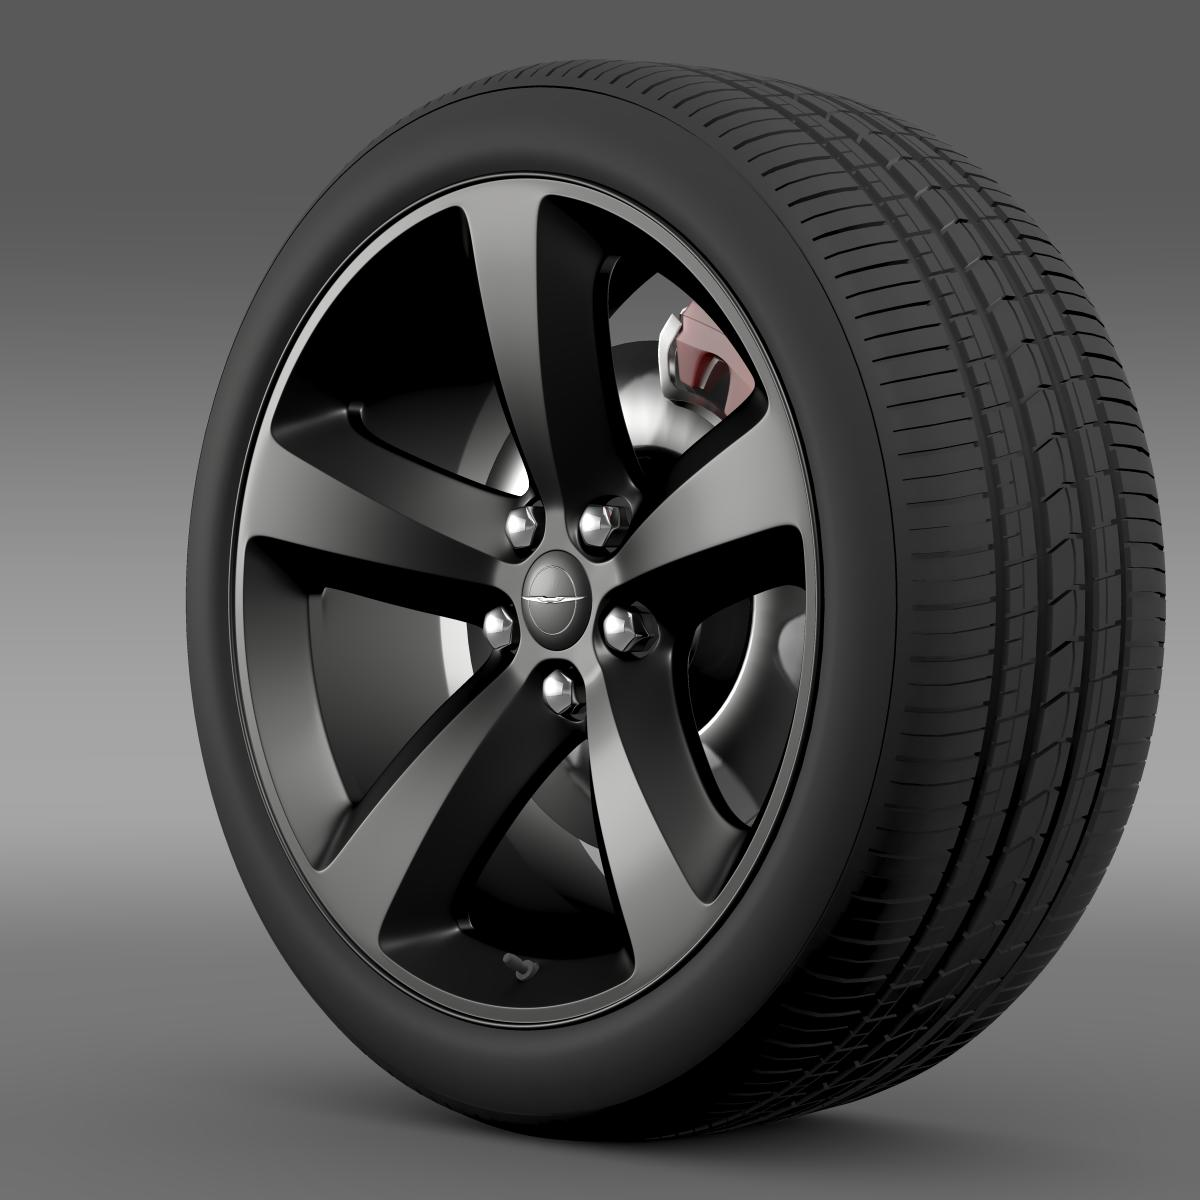 chrysler 300s wheel 3d model 3ds max fbx c4d lwo ma mb hrc xsi obj 210668